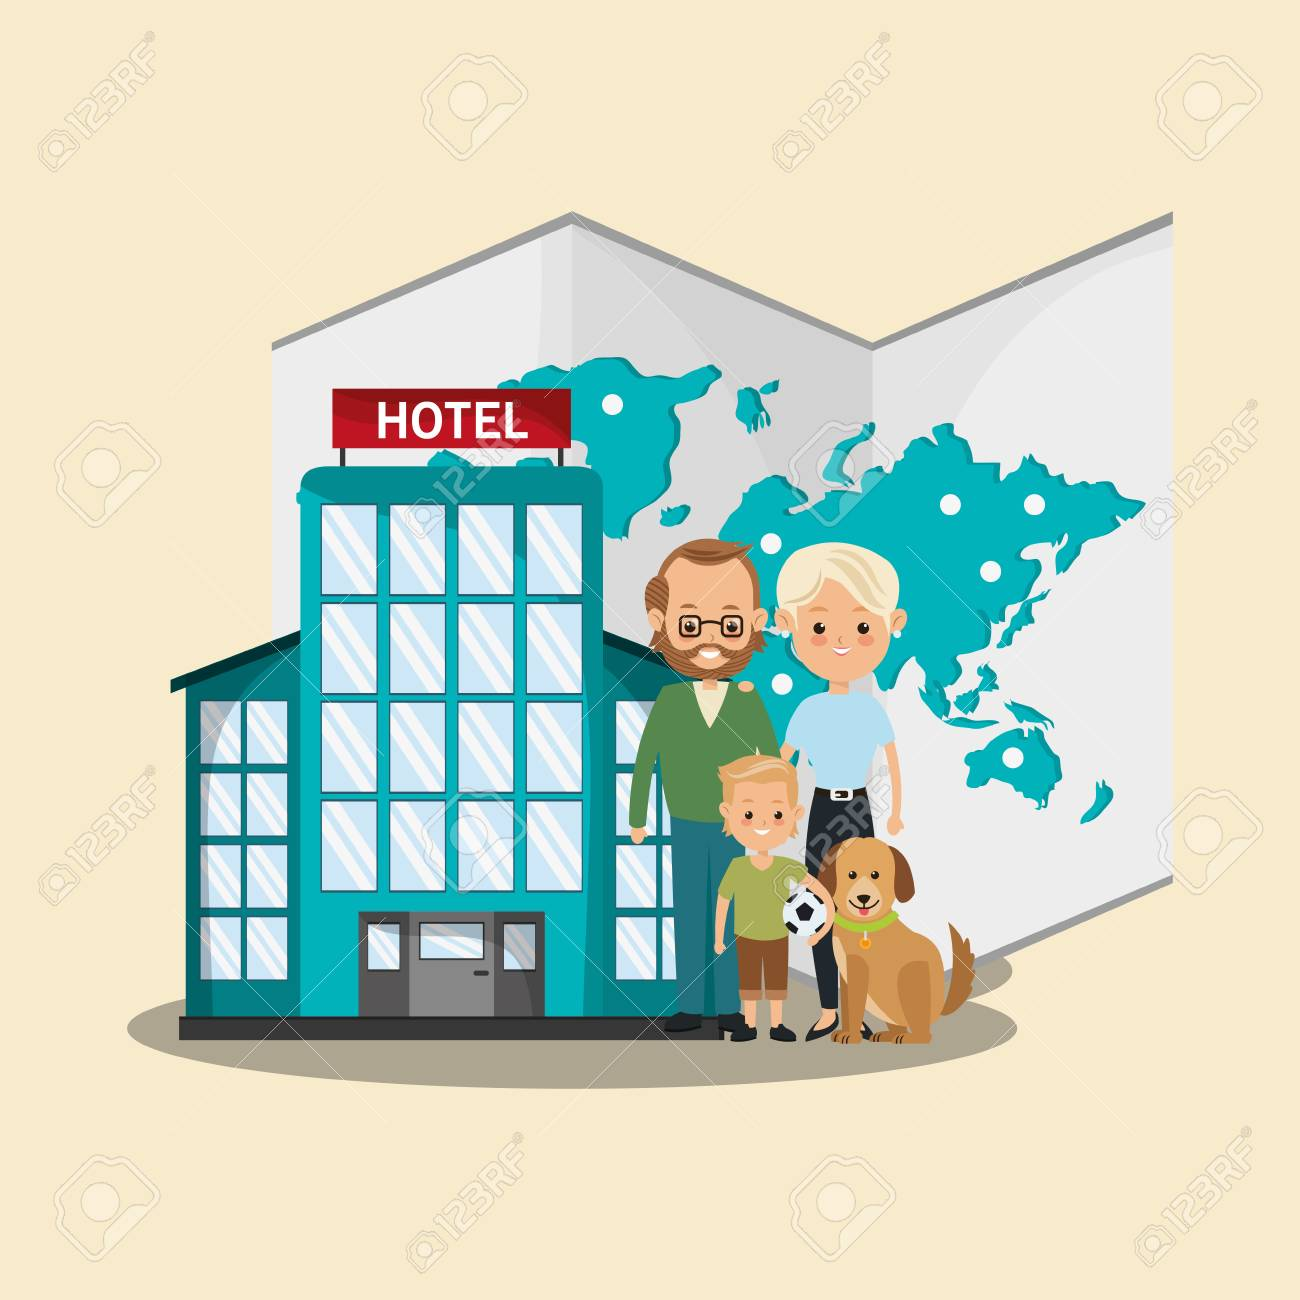 Hotel building icom happy family and world map travel and tourism hotel building icom happy family and world map travel and tourism concept colorful design gumiabroncs Choice Image